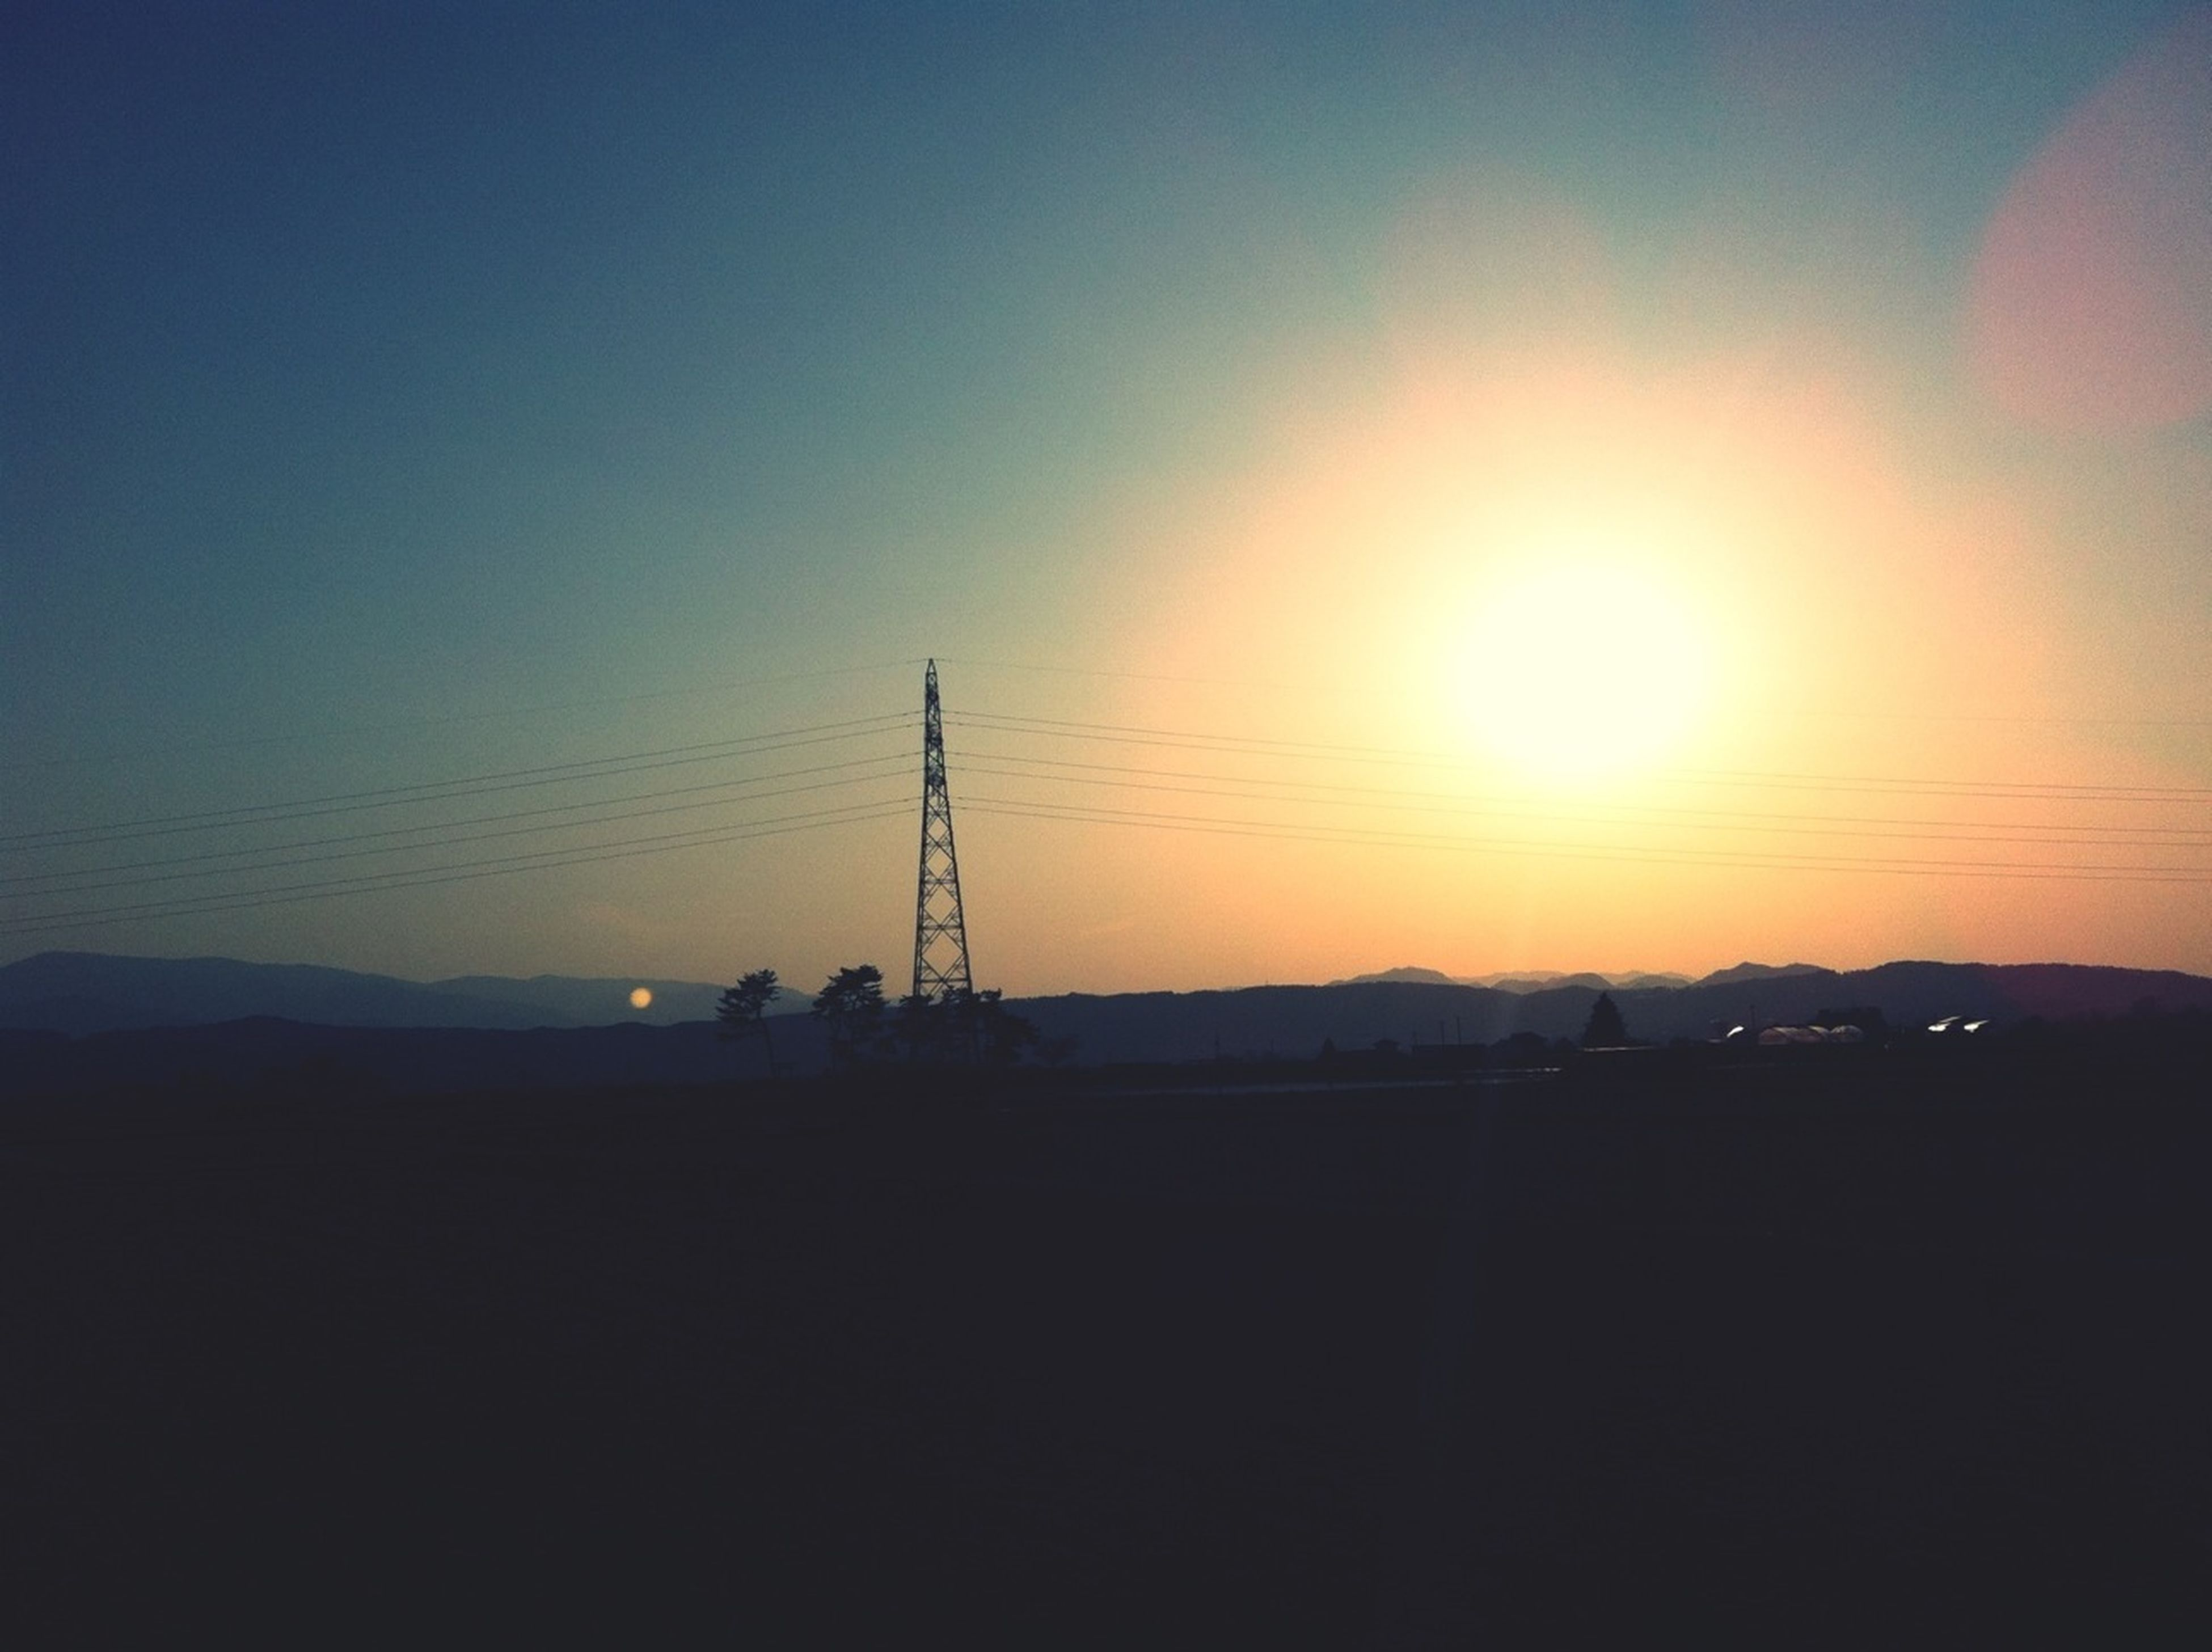 sunset, silhouette, sun, orange color, copy space, clear sky, scenics, tranquility, tranquil scene, beauty in nature, landscape, nature, electricity pylon, sunlight, fuel and power generation, sky, idyllic, outdoors, technology, electricity